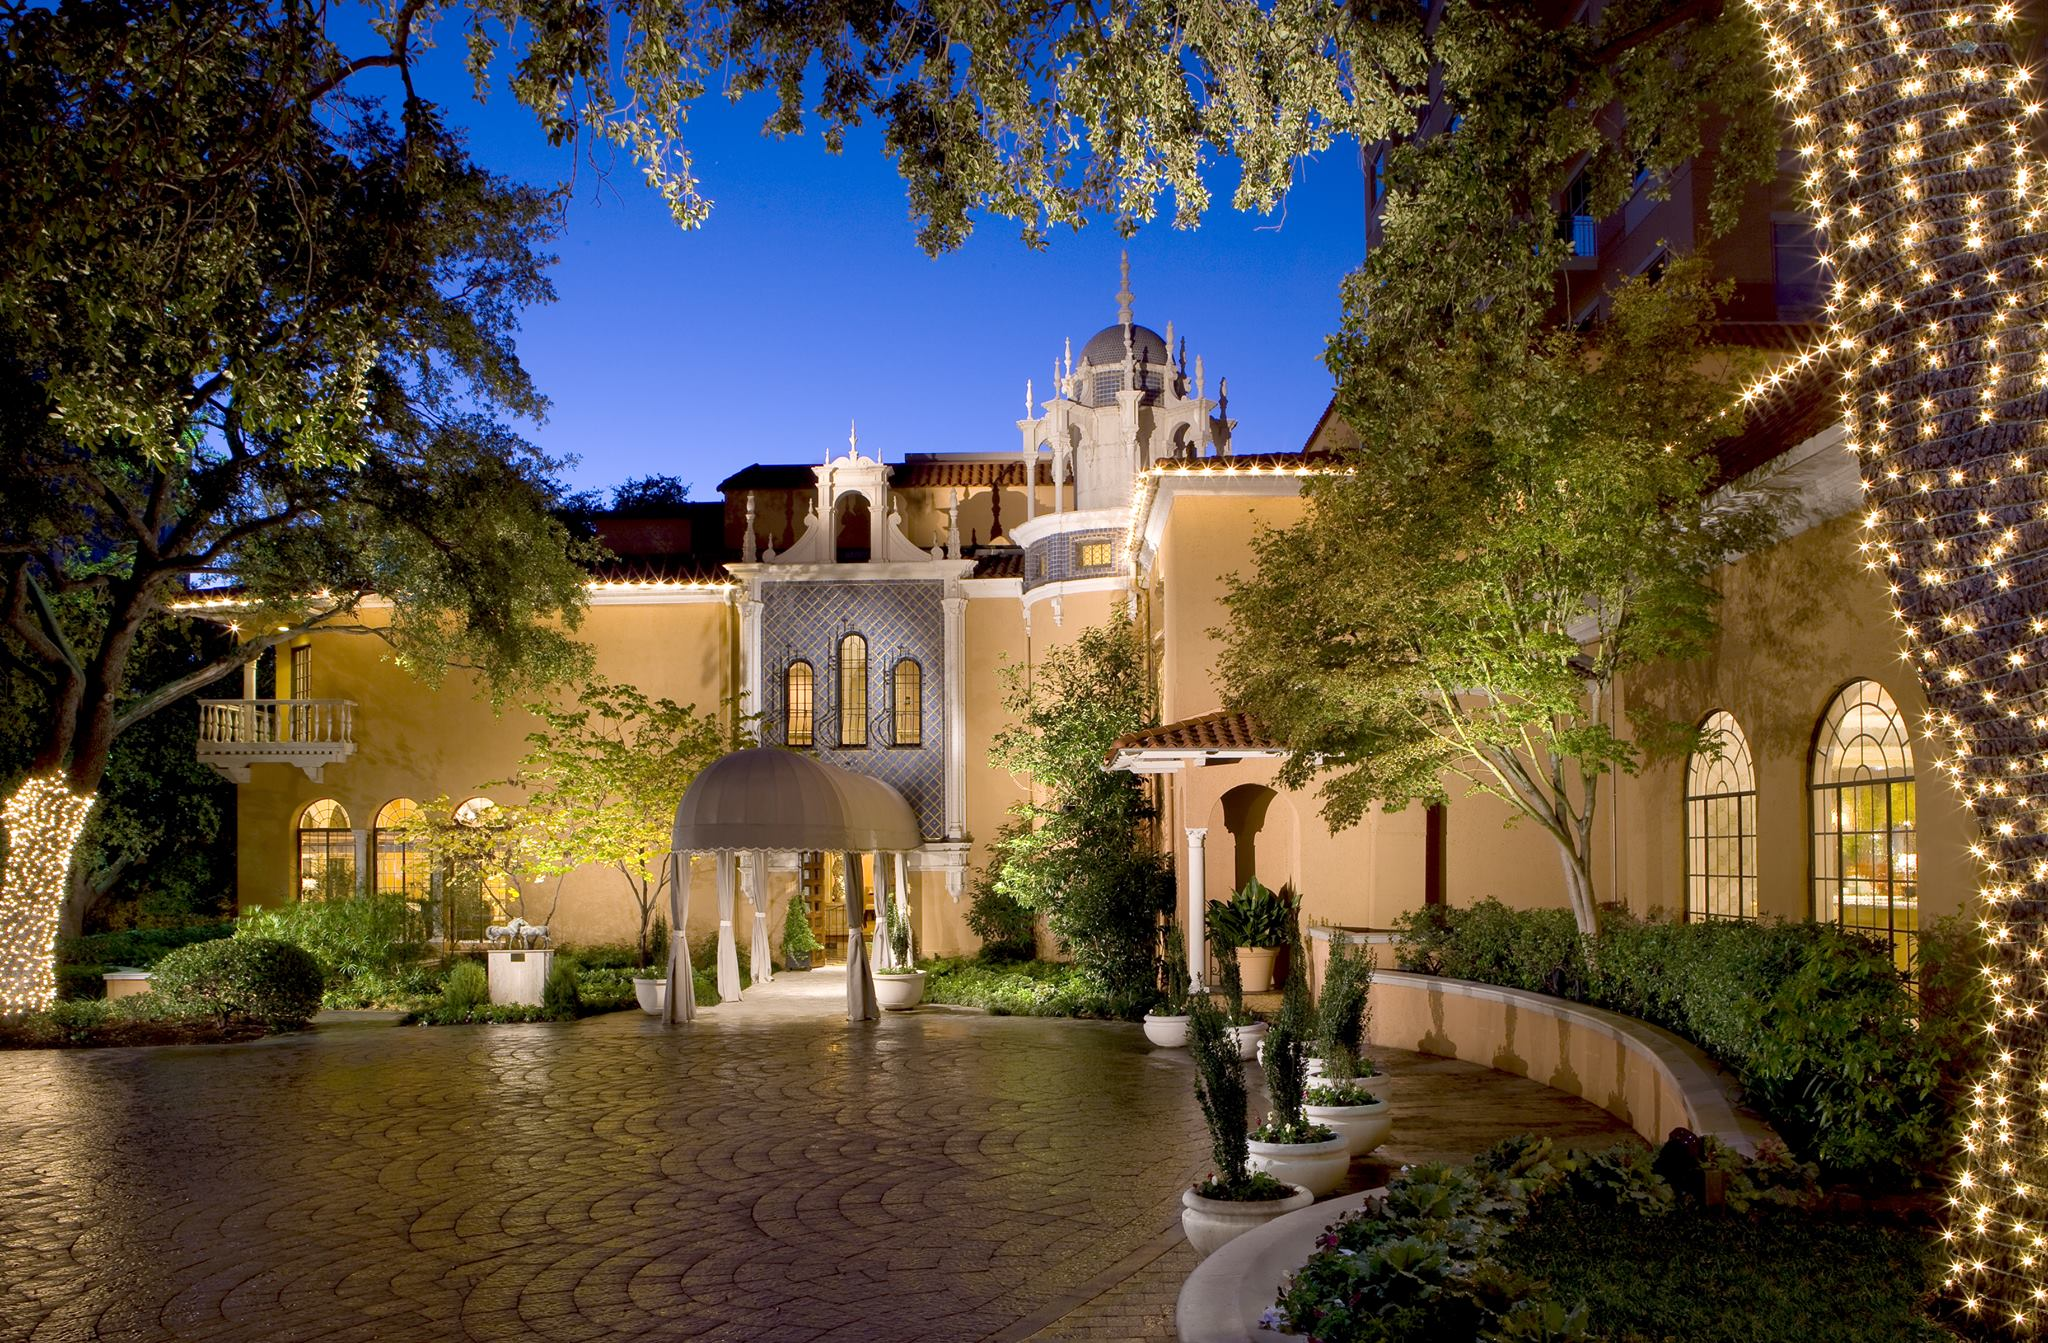 Entrance to Rosewood Mansion